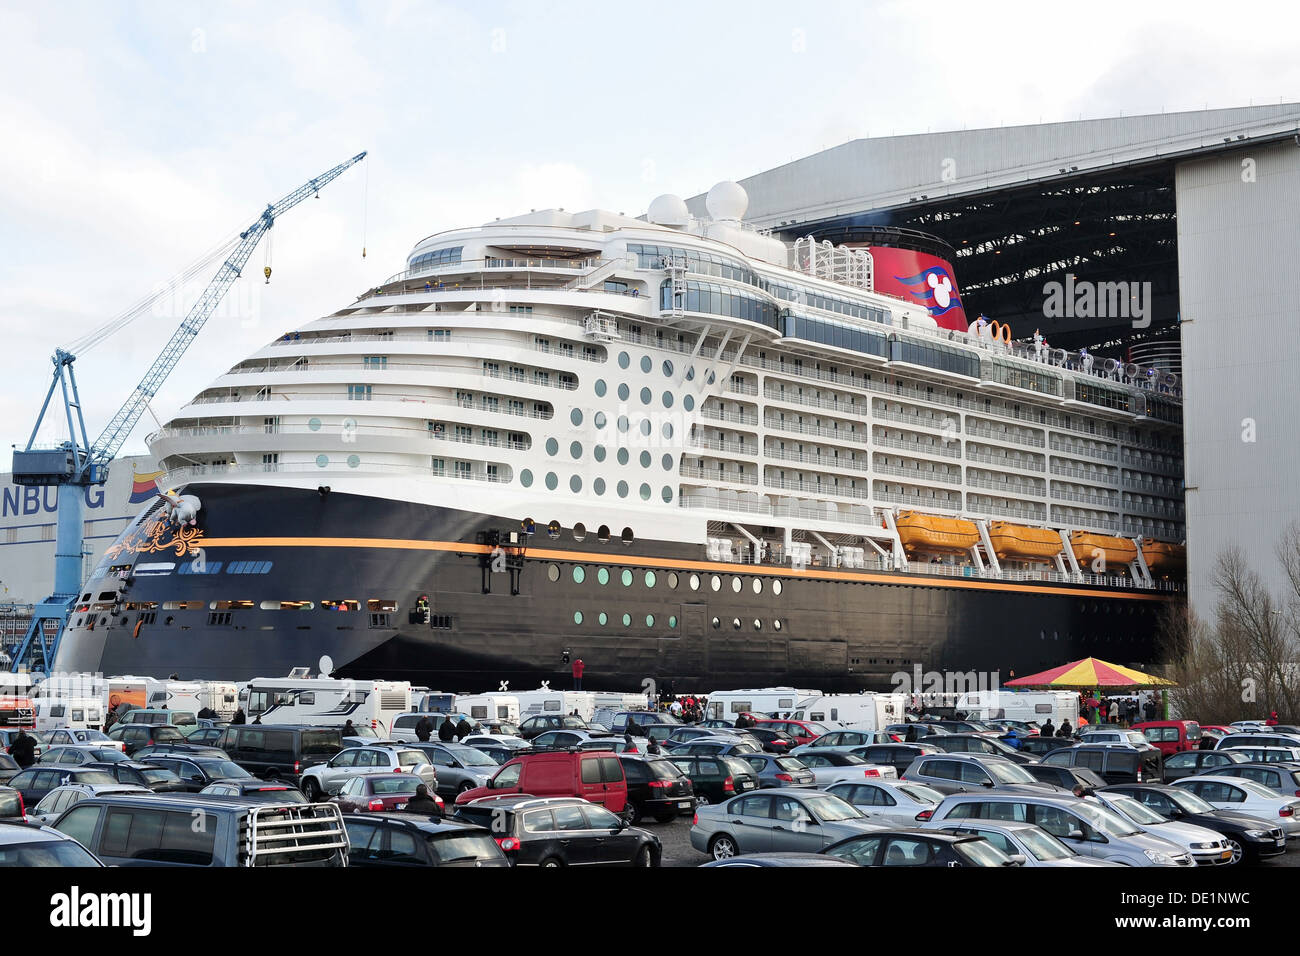 papenburg germany cruise ship disney fantasy at the meyer shipyard stock photo 60275416 alamy. Black Bedroom Furniture Sets. Home Design Ideas